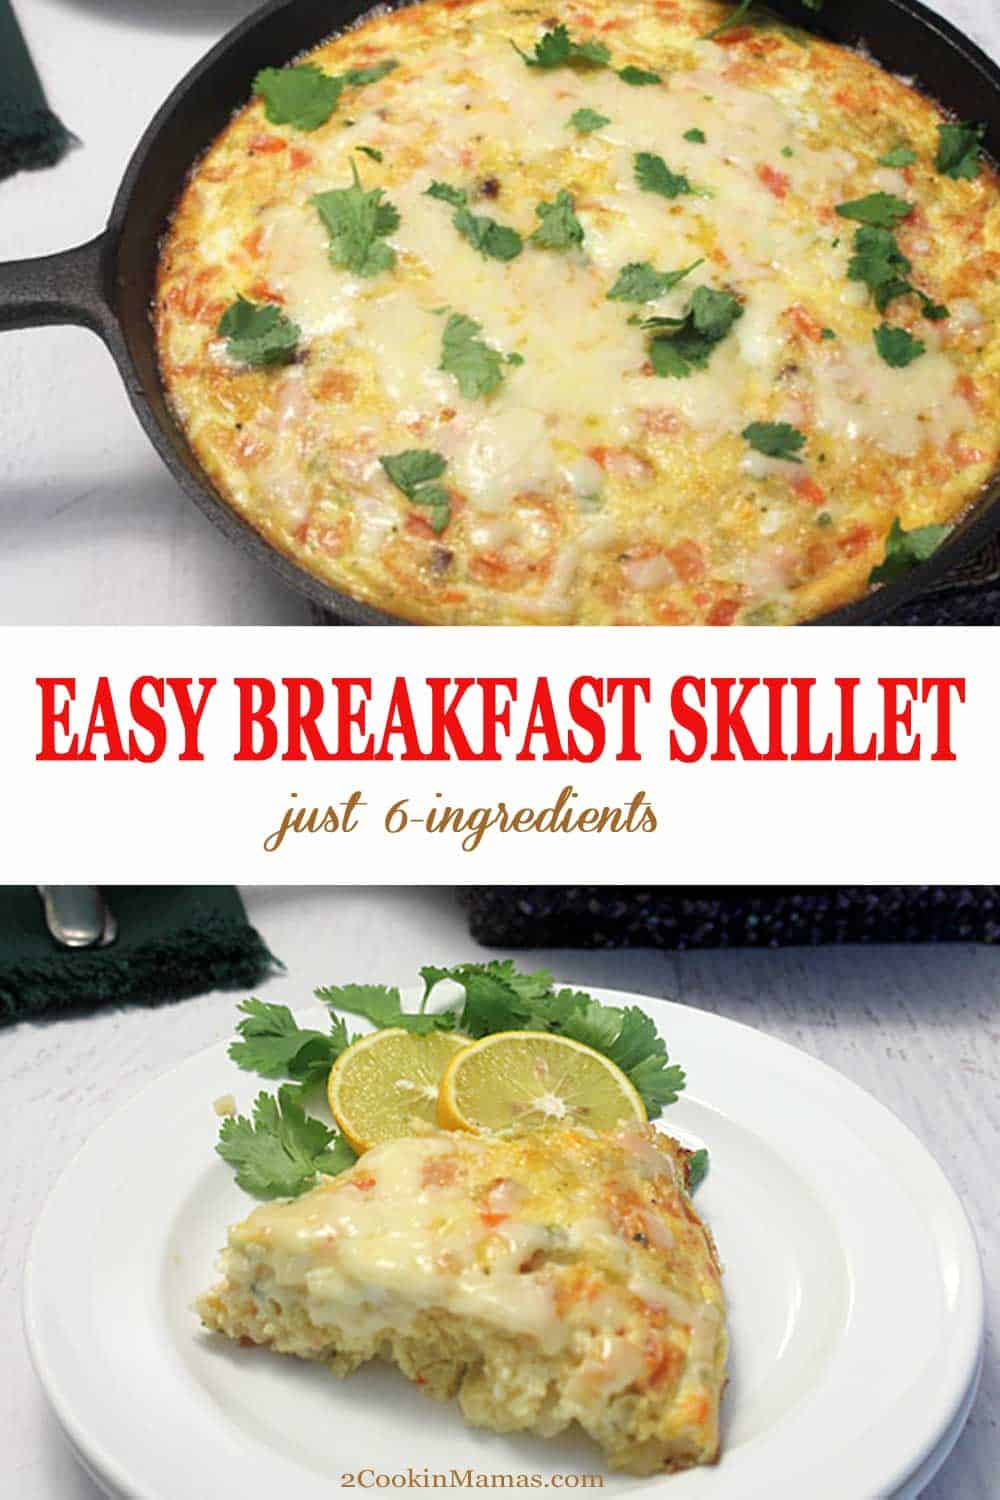 Make this easy loaded breakfast skillet with only 6 ingredients & one pan! Mix bacon, eggs, hash browns, salsa & cheese then bake. Delicious breakfast without the fuss! #breakfast #eggs #recipe #bacon #hashbrowns #easy #onepan #ironskillet #cheese